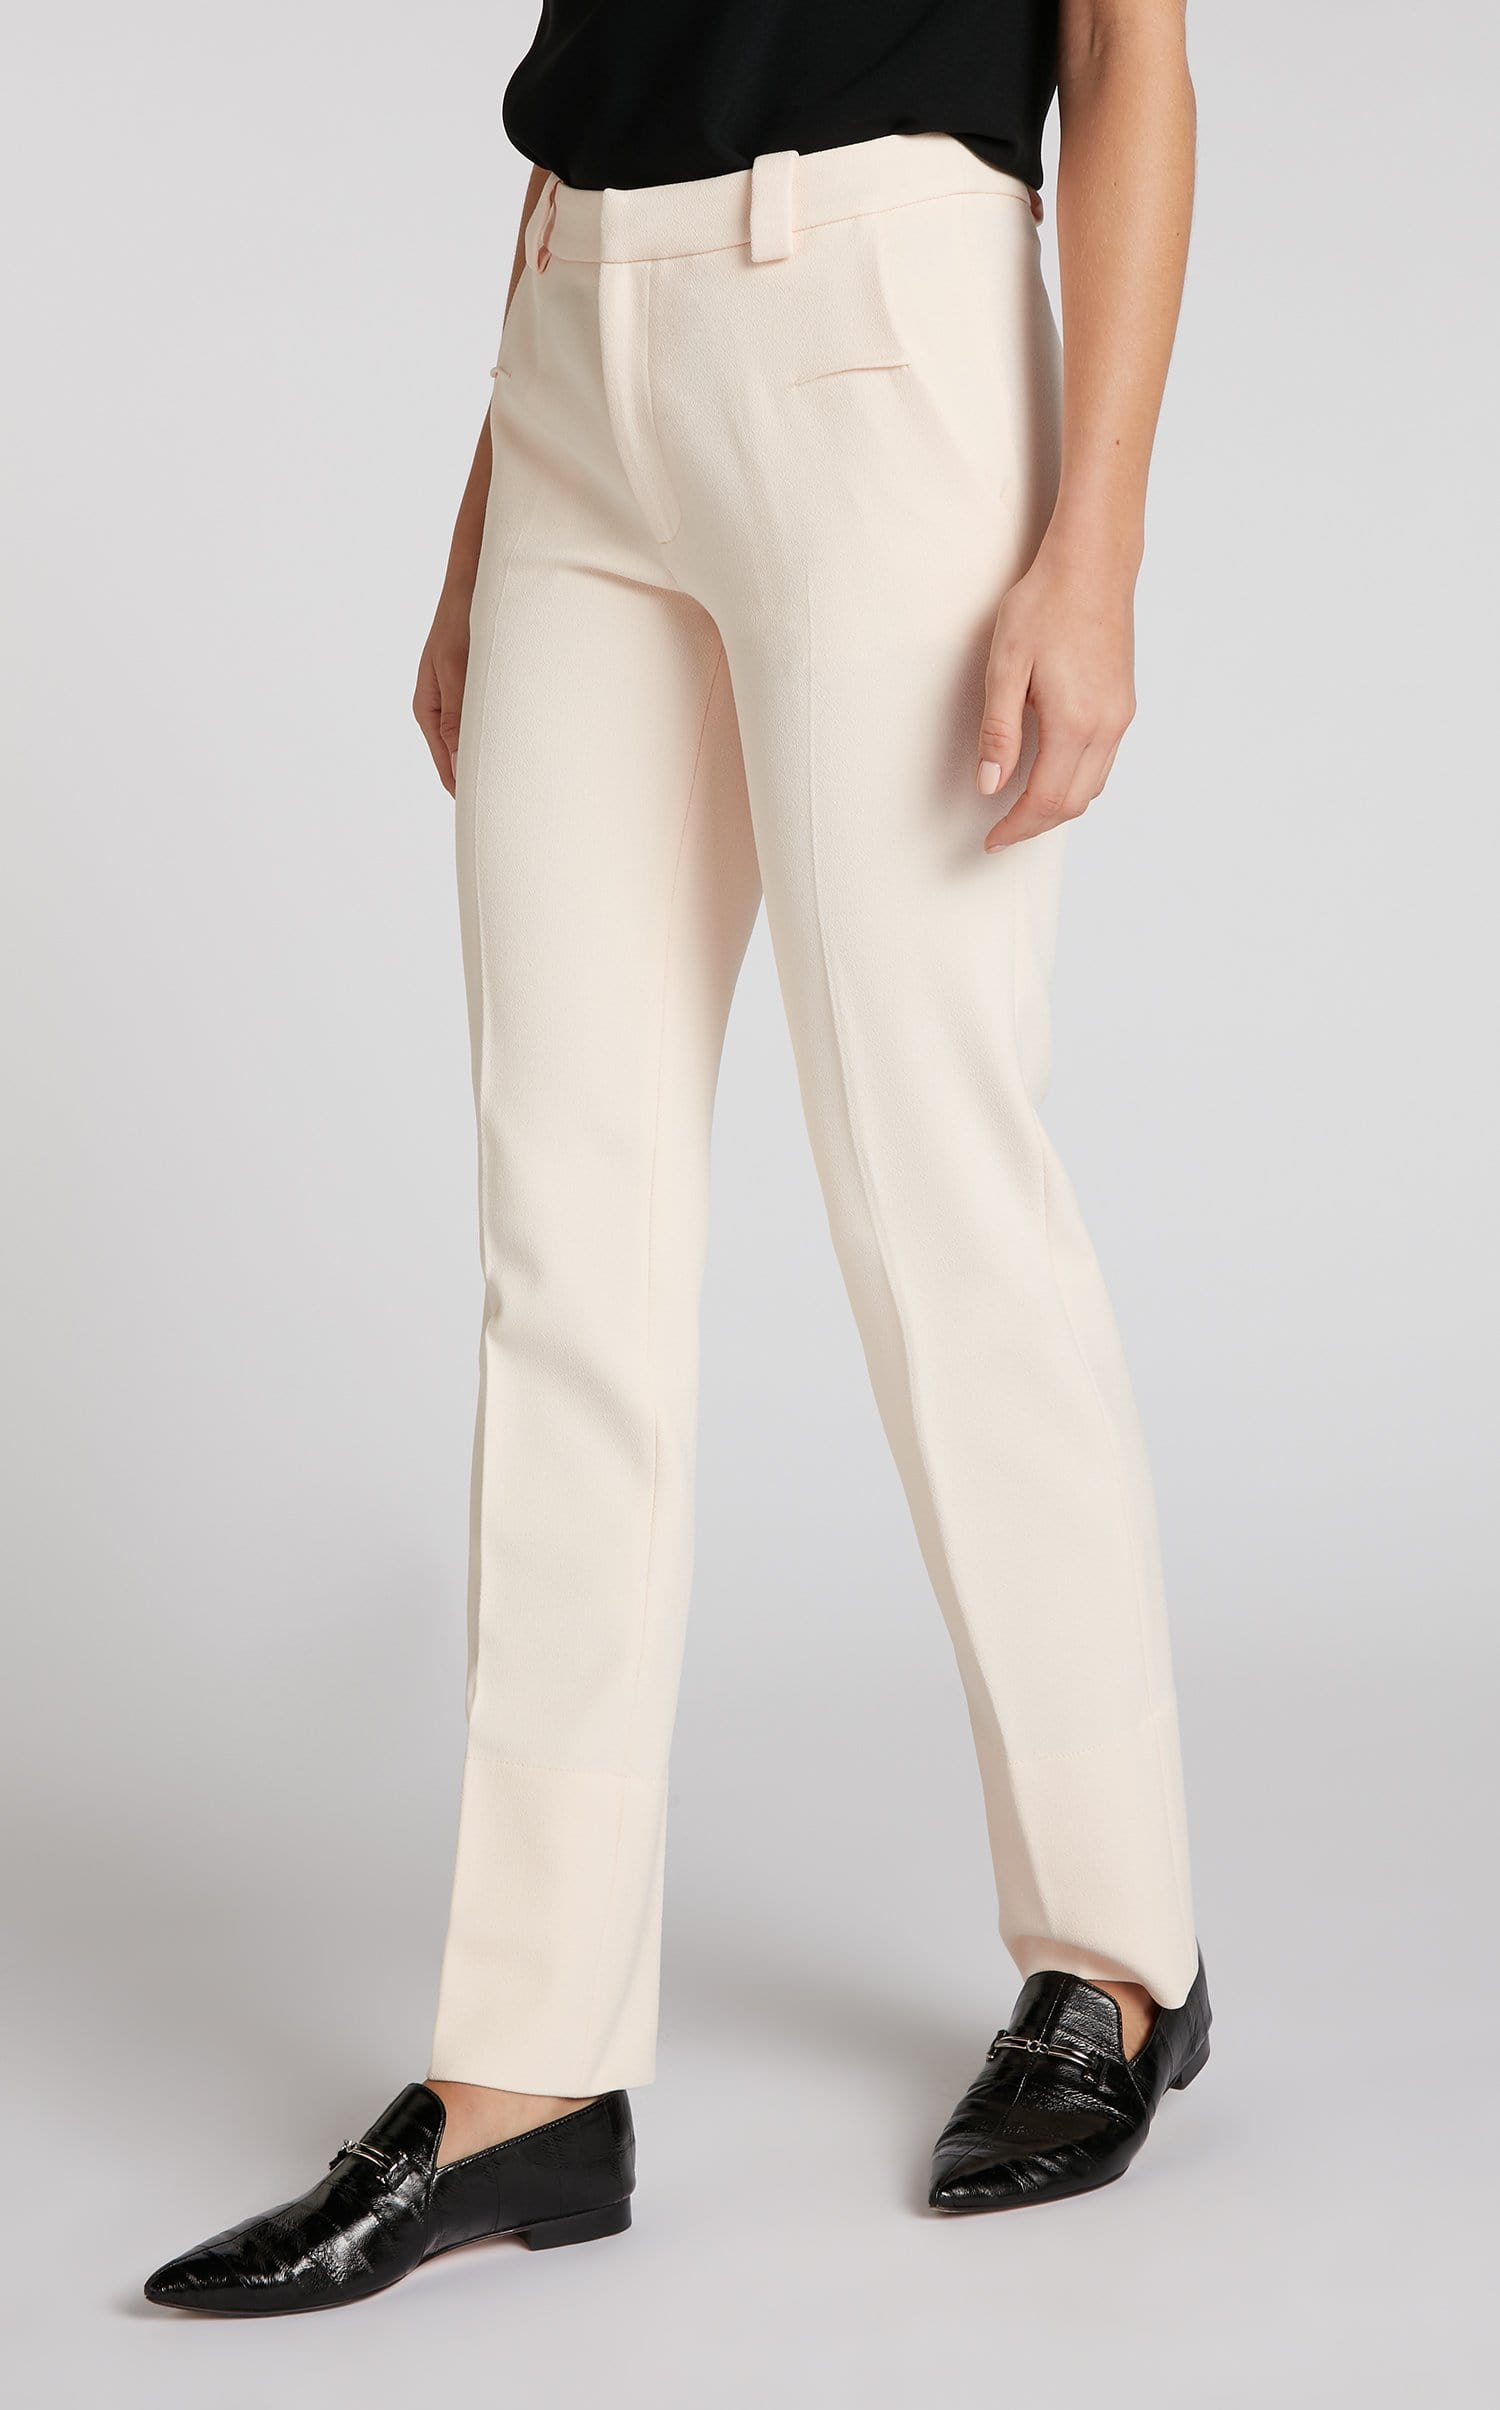 Lacerta Trouser